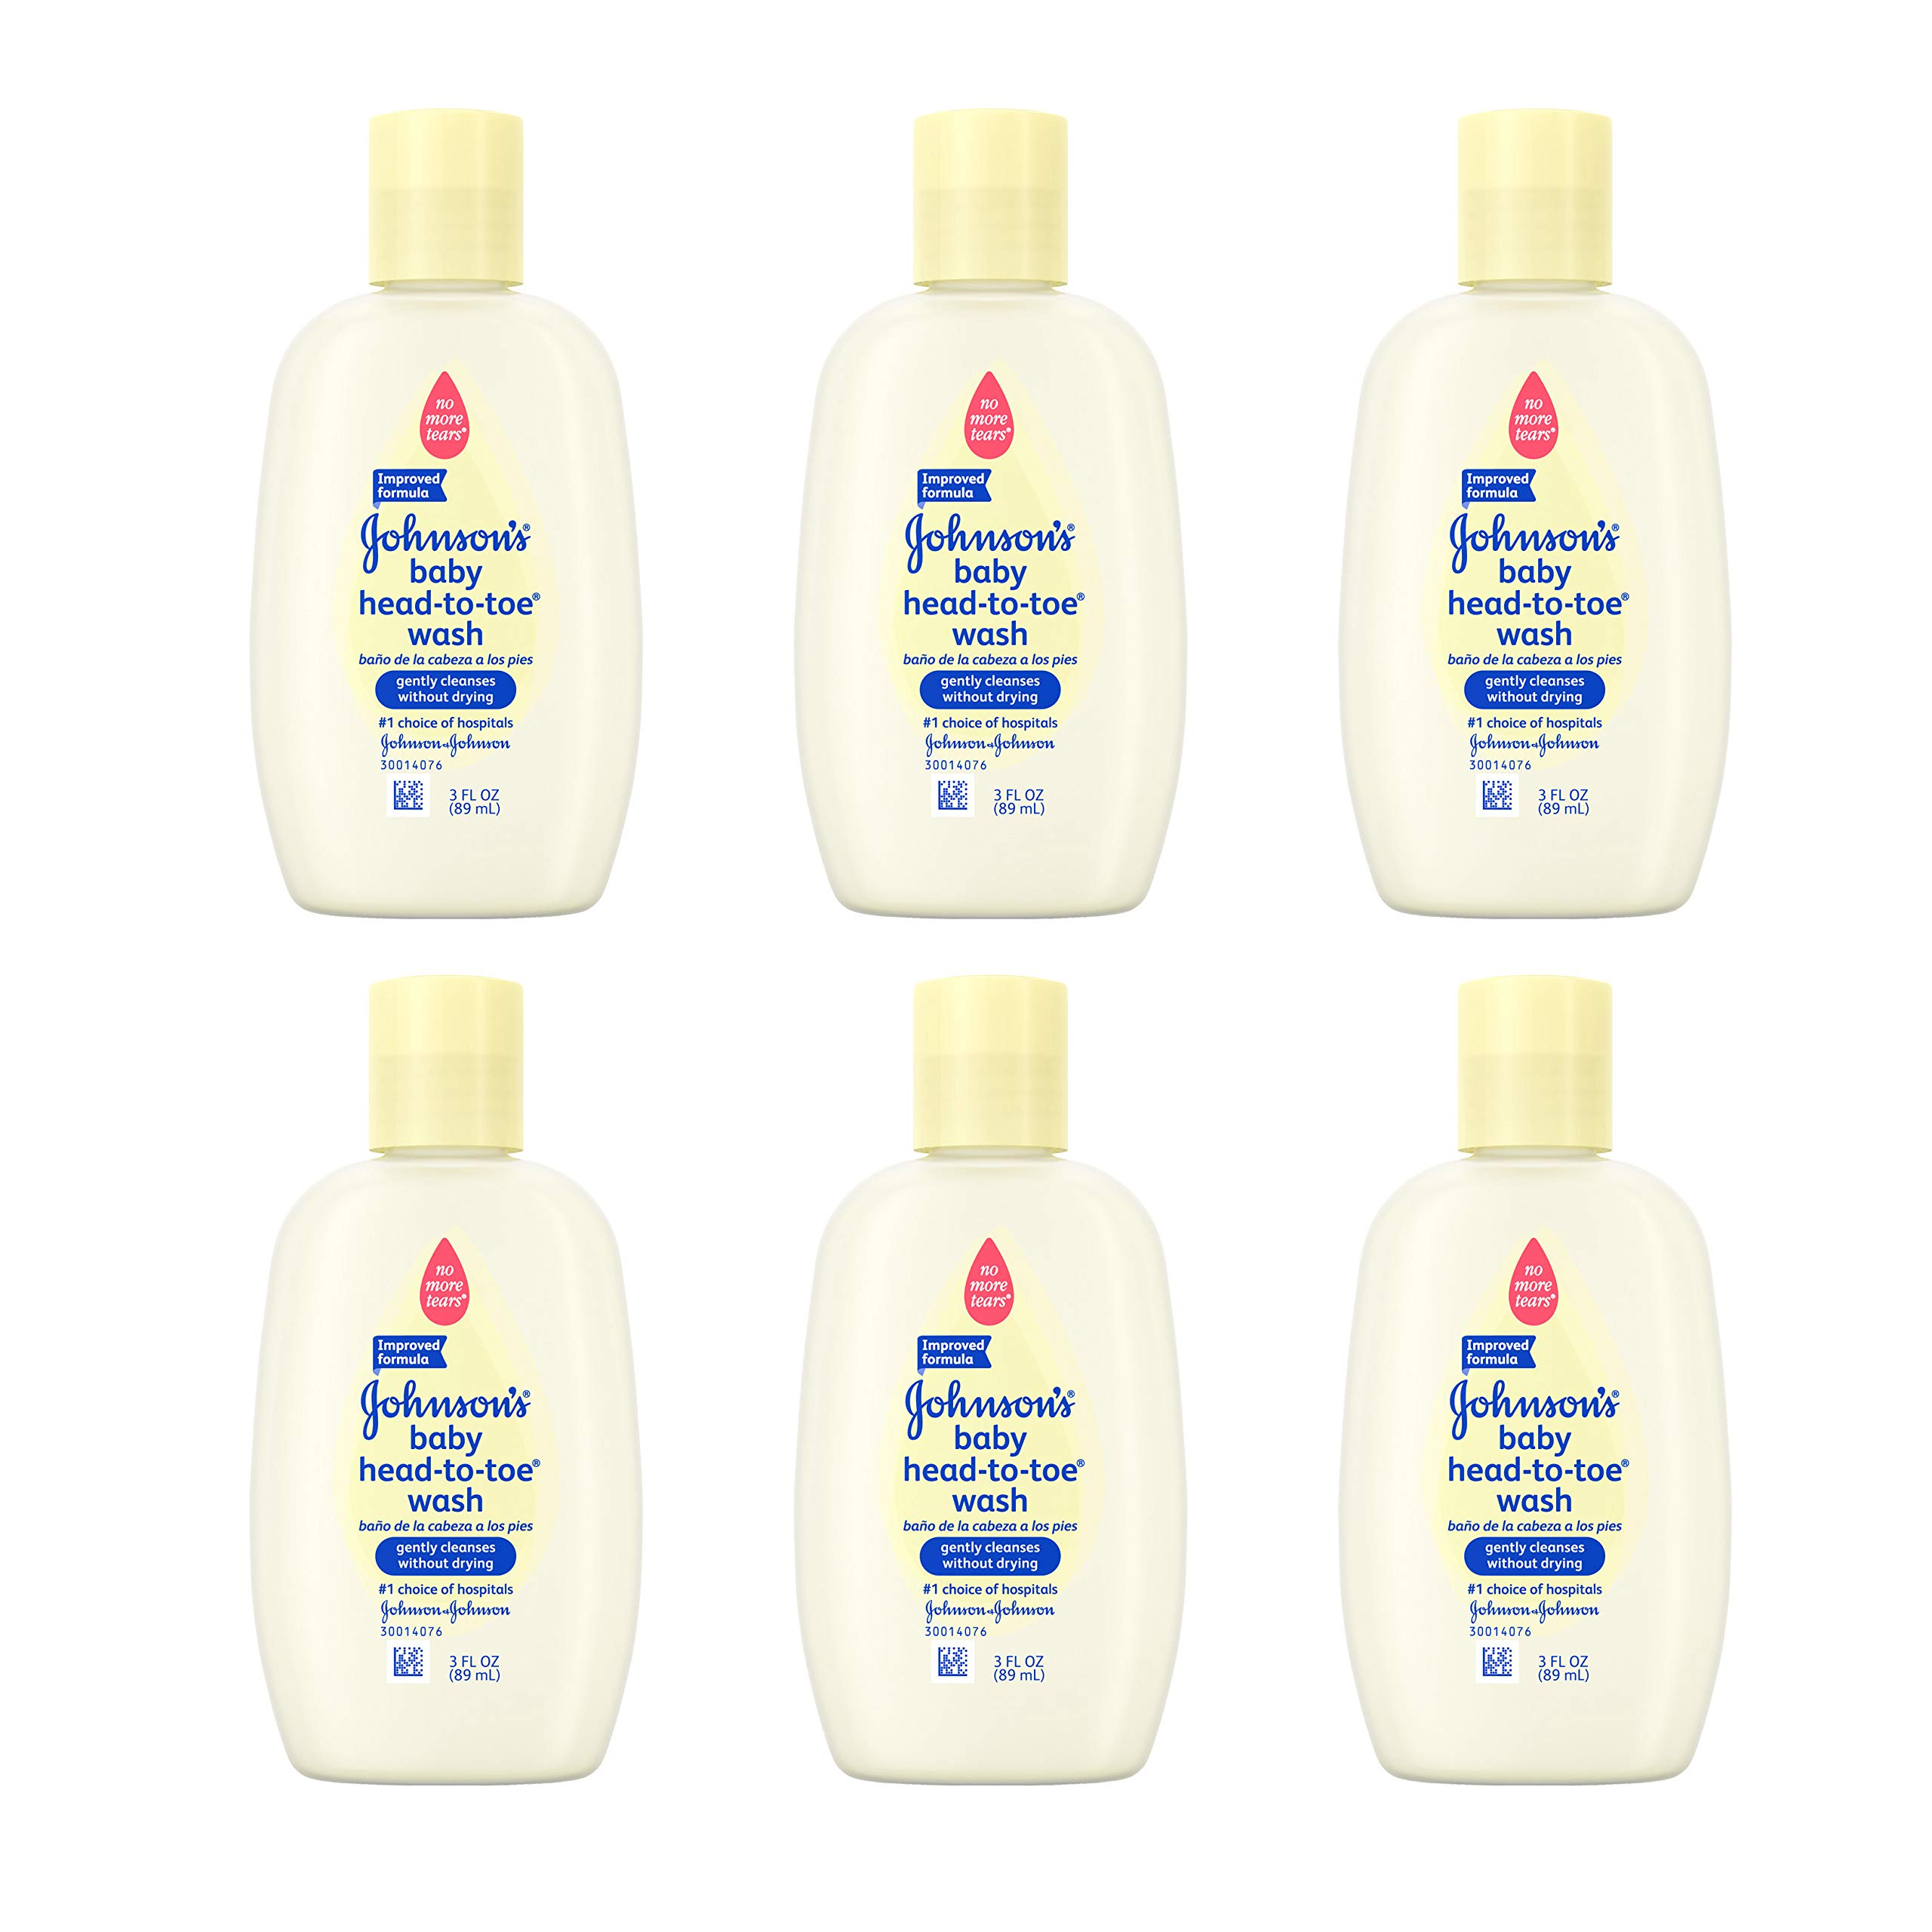 Johnson's Head-To-Toe Baby Wash, Travel Size, 3 Fl. Oz. (Pack of 6) by Johnson's Baby